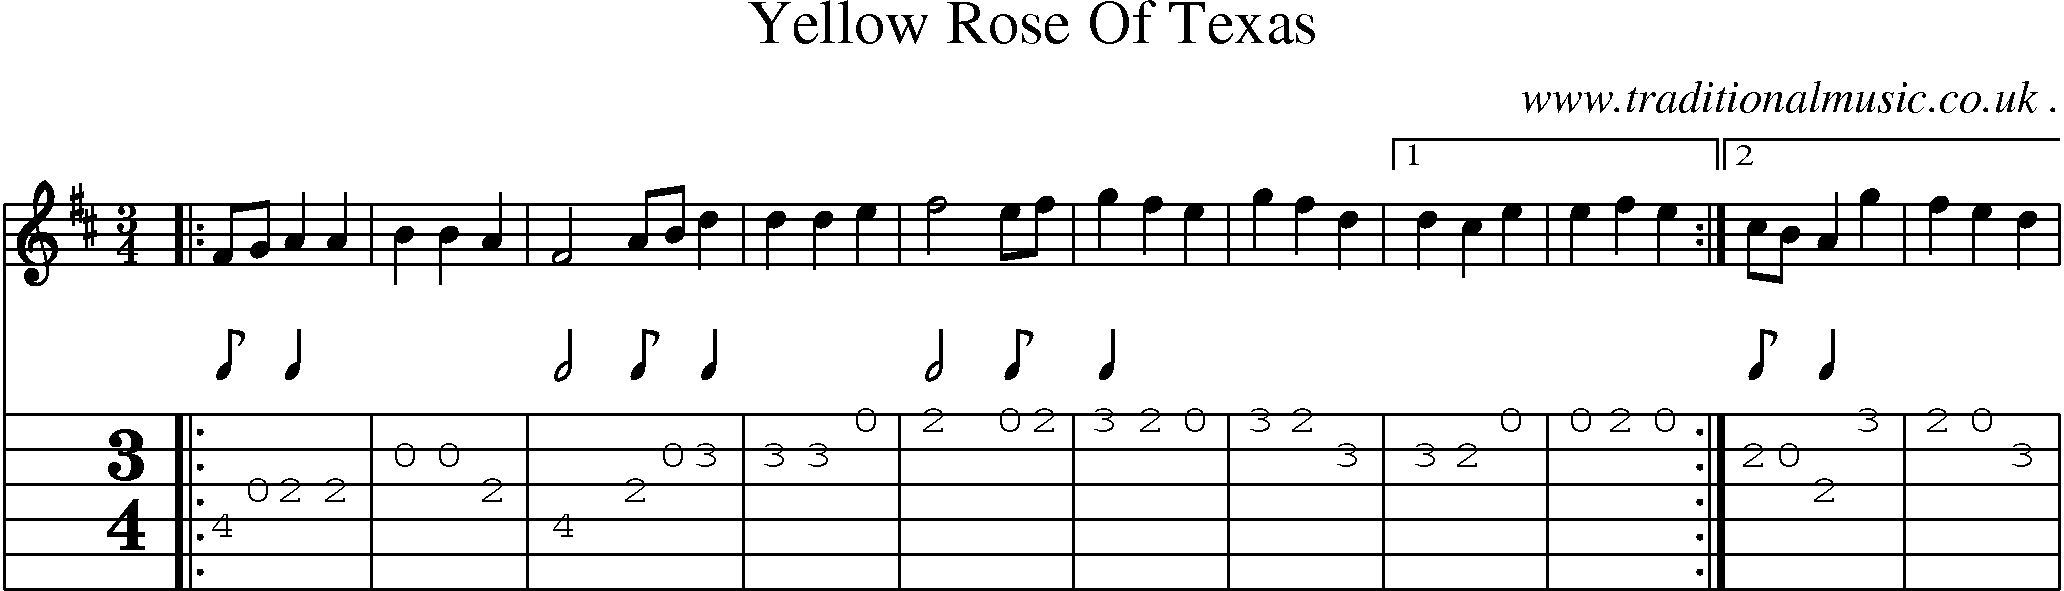 American Old-time music, Scores and Tabs for Guitar - Yellow Rose Of Texas